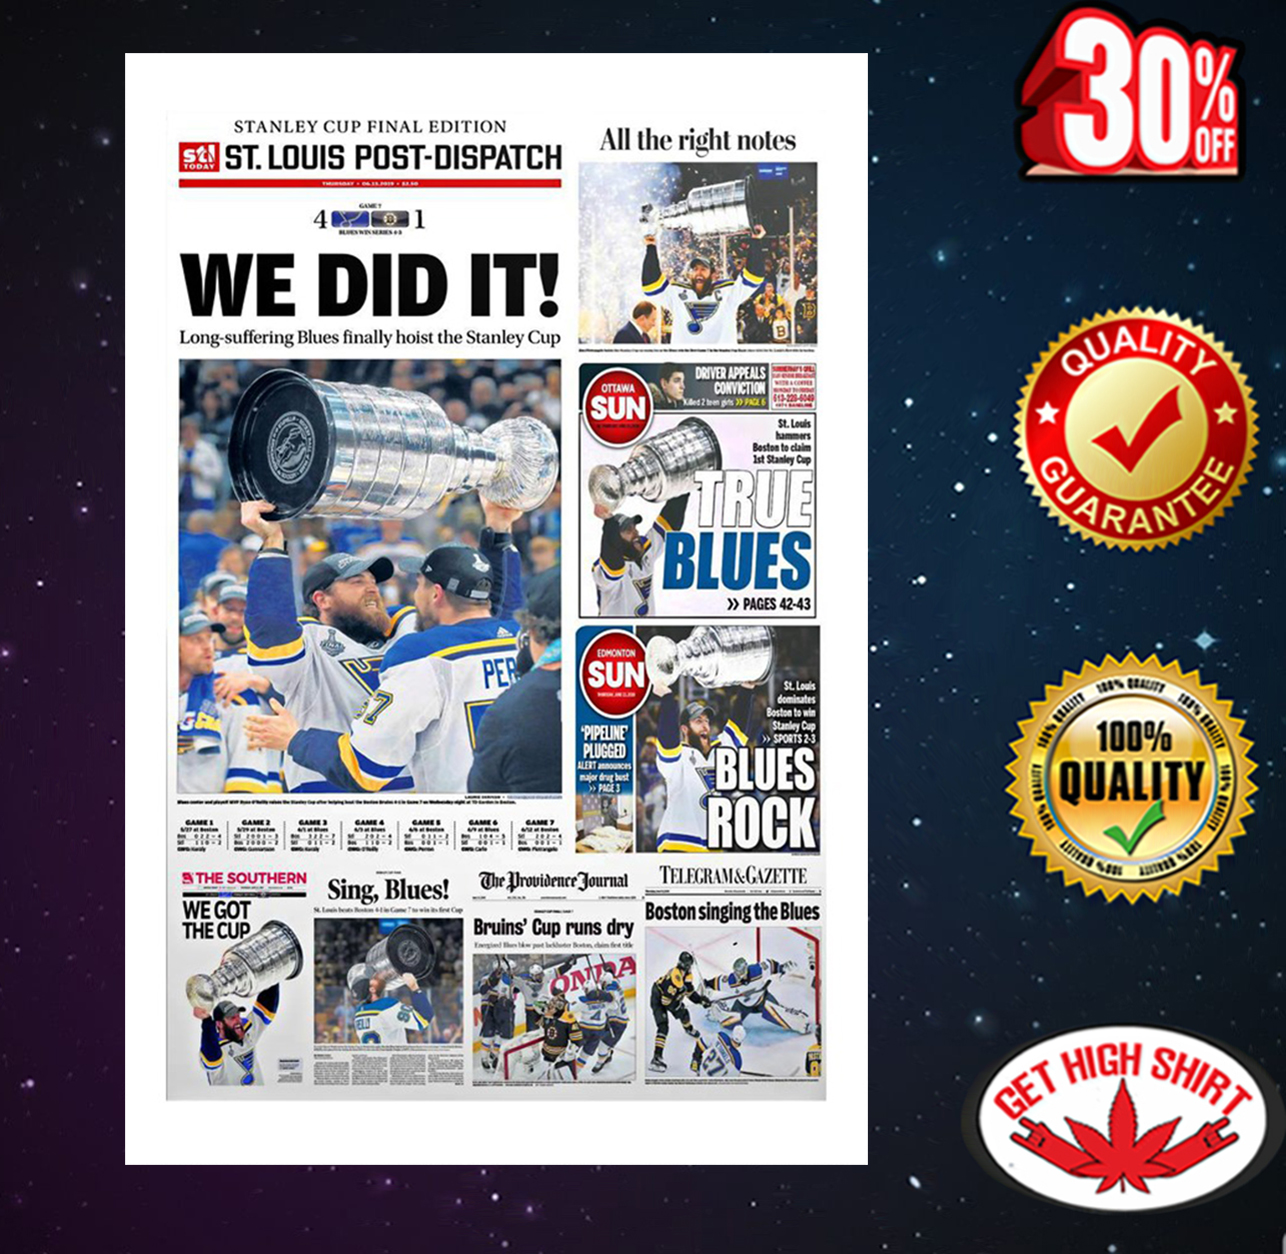 We did it Stanley Cup Final Edition St. Louis Post-Dispatch poster 16x24